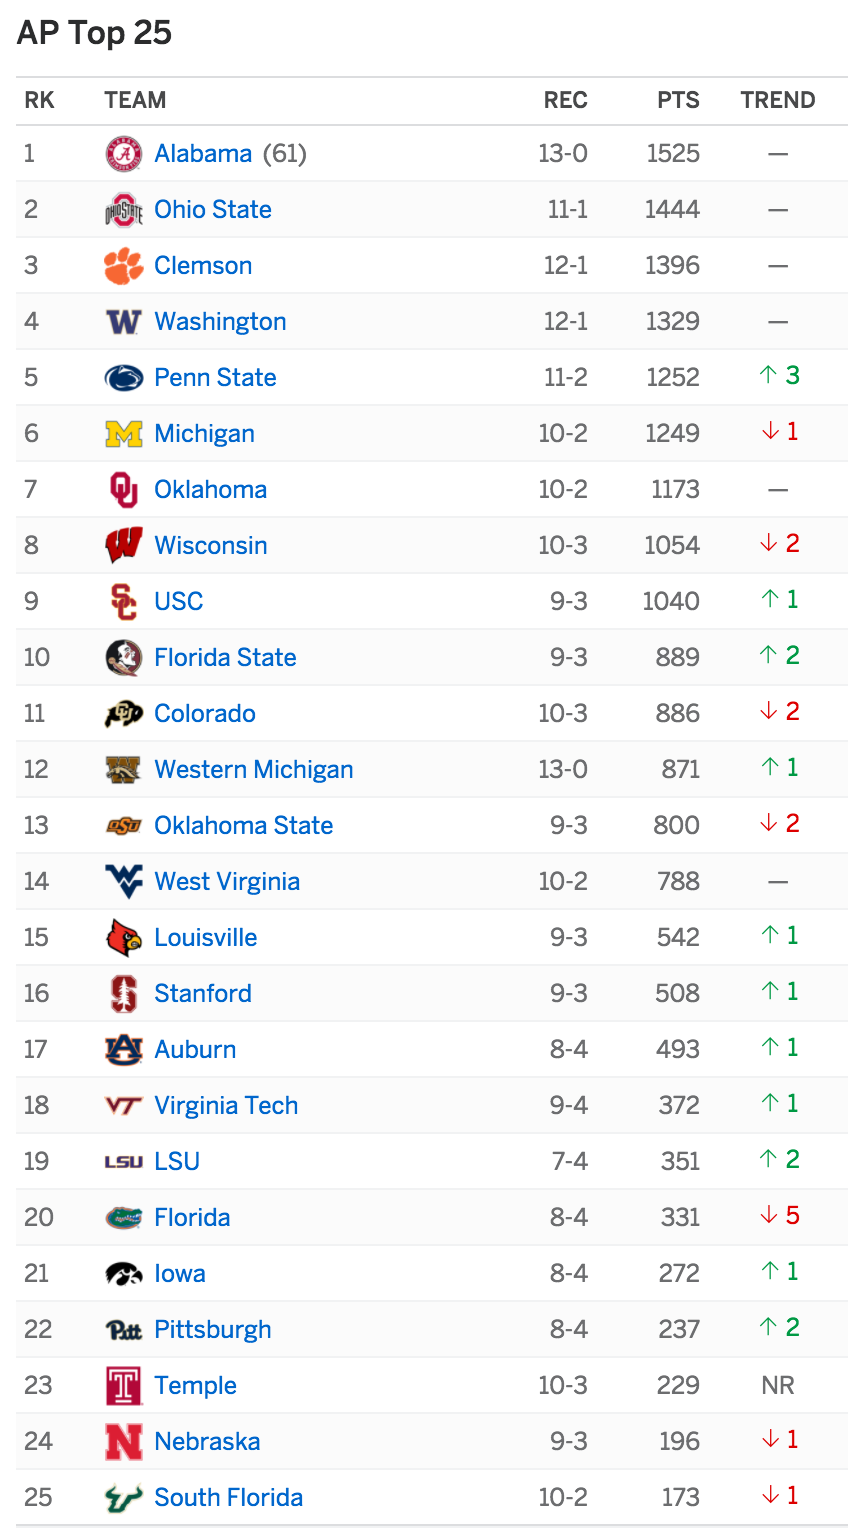 ap top 25 conference